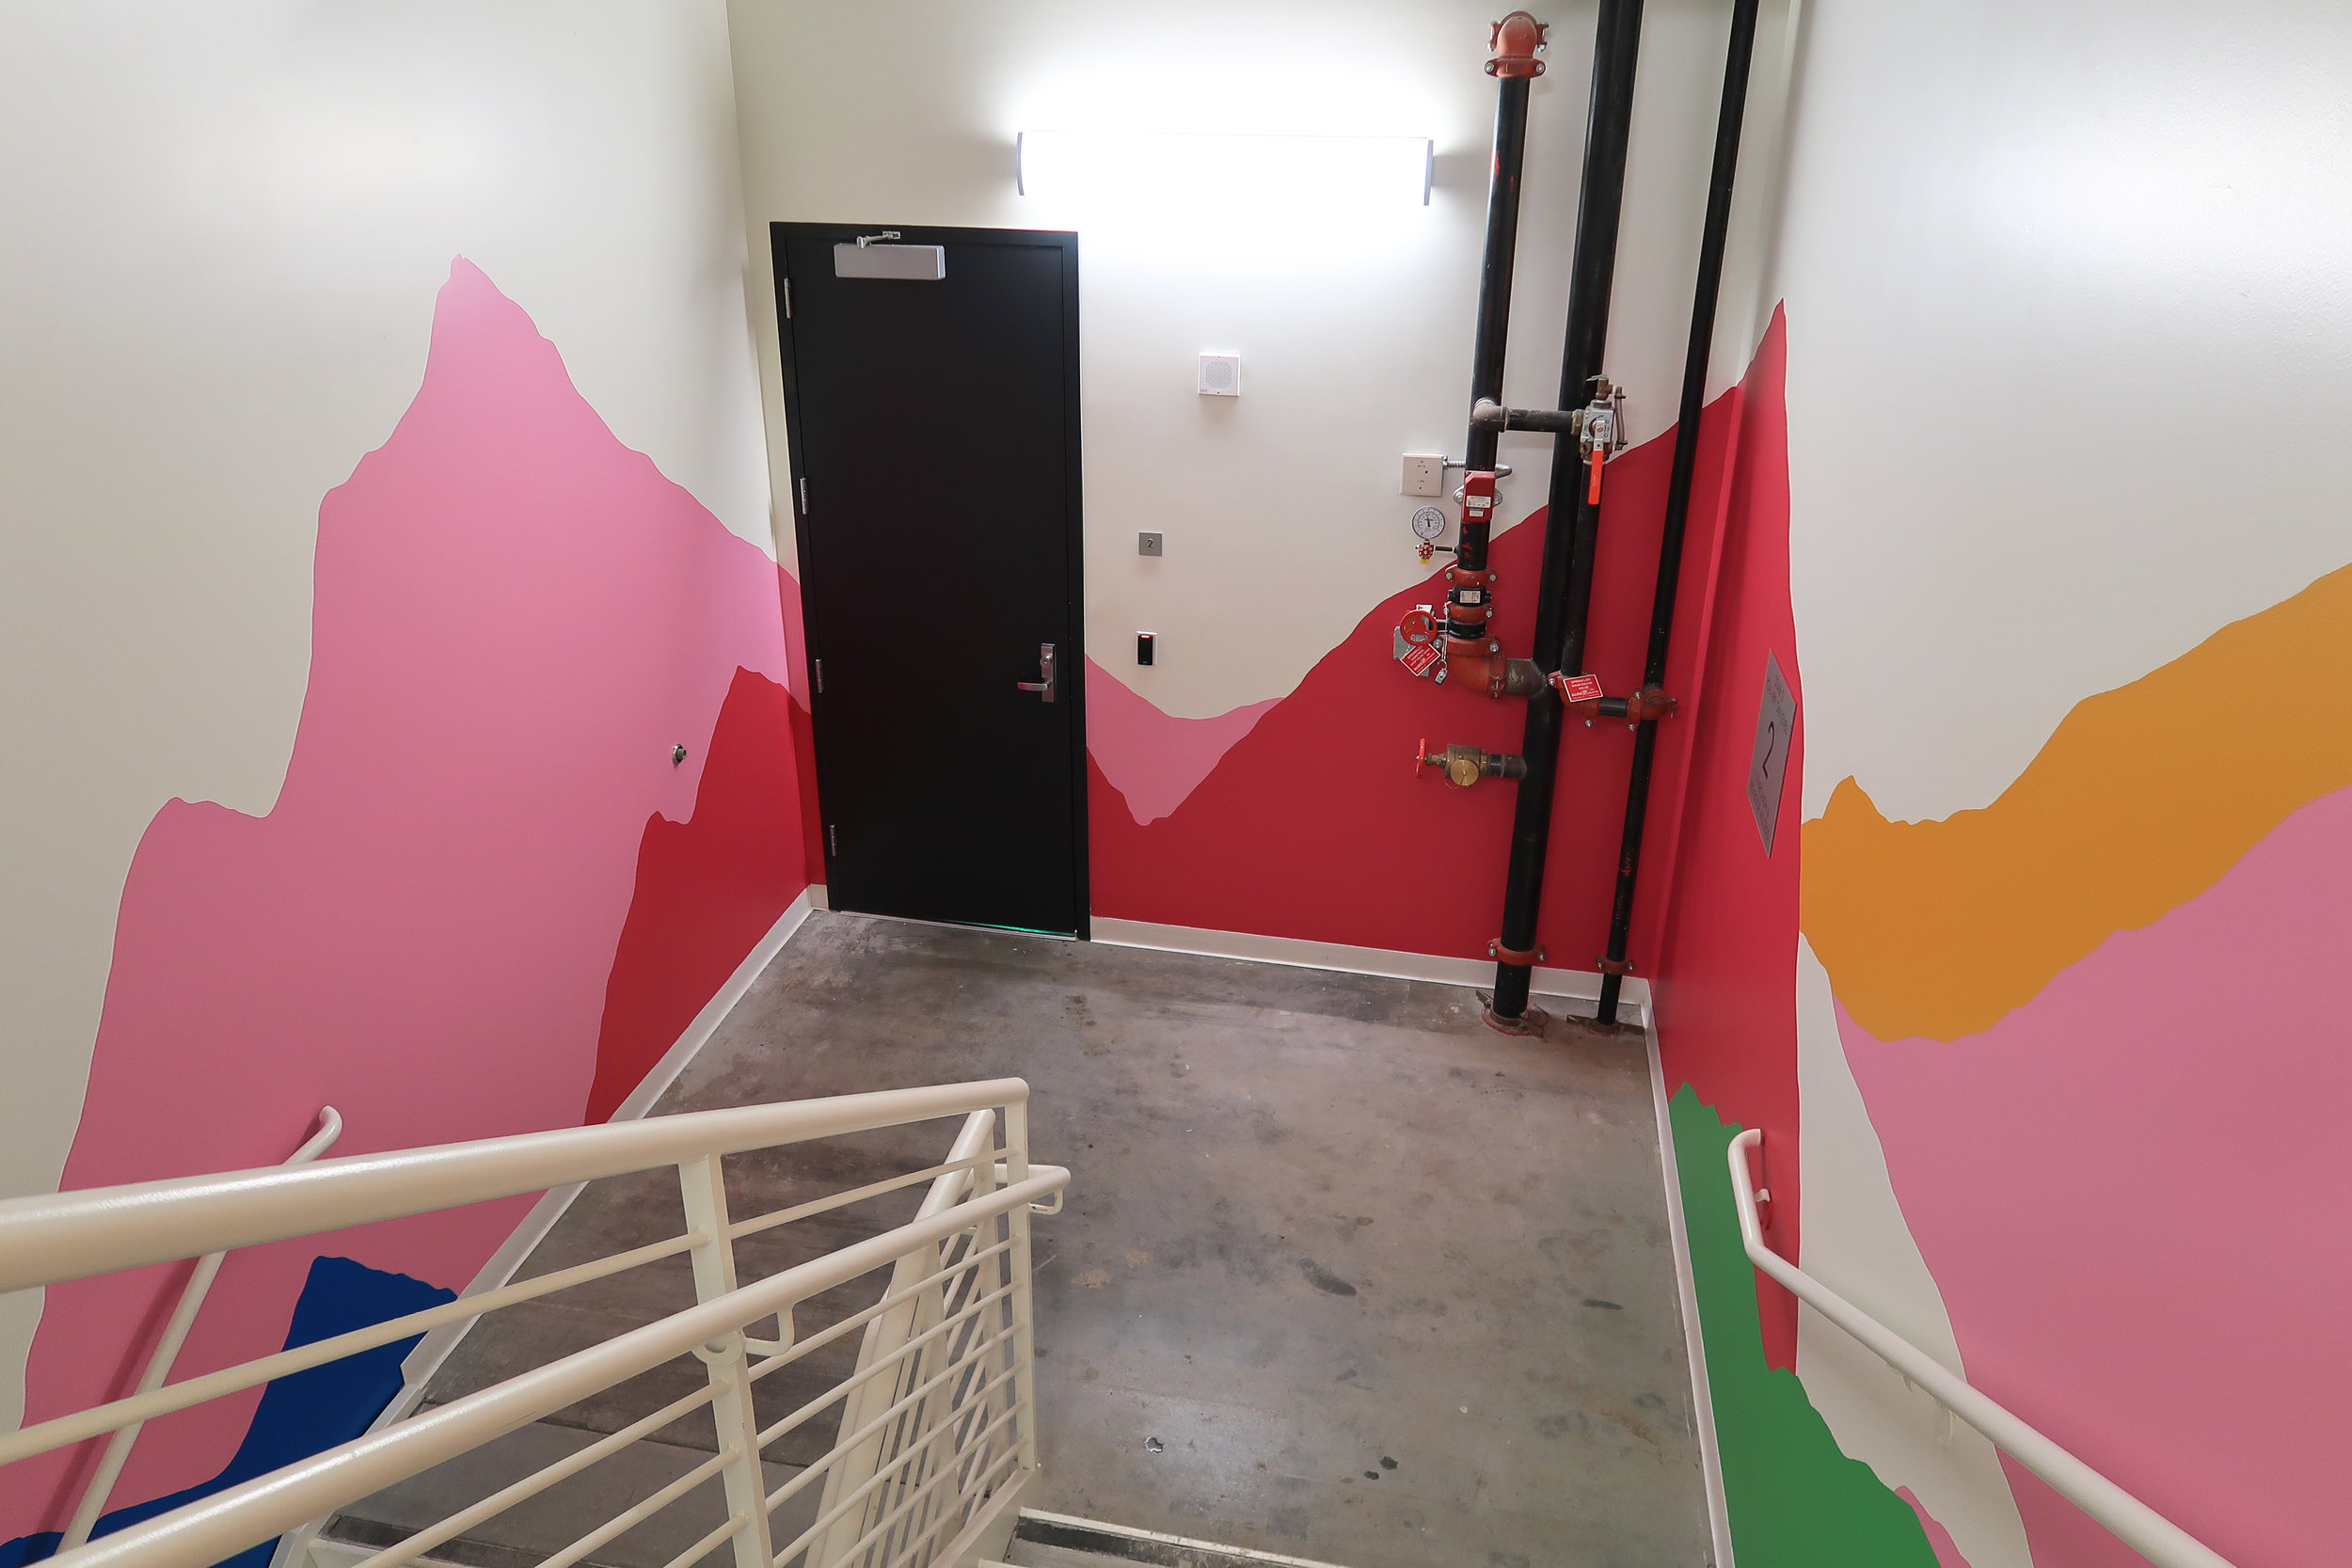 Office-commercial-mural-san-francisco-wework-stairs-wall-and-wall-mural-company_004.jpeg